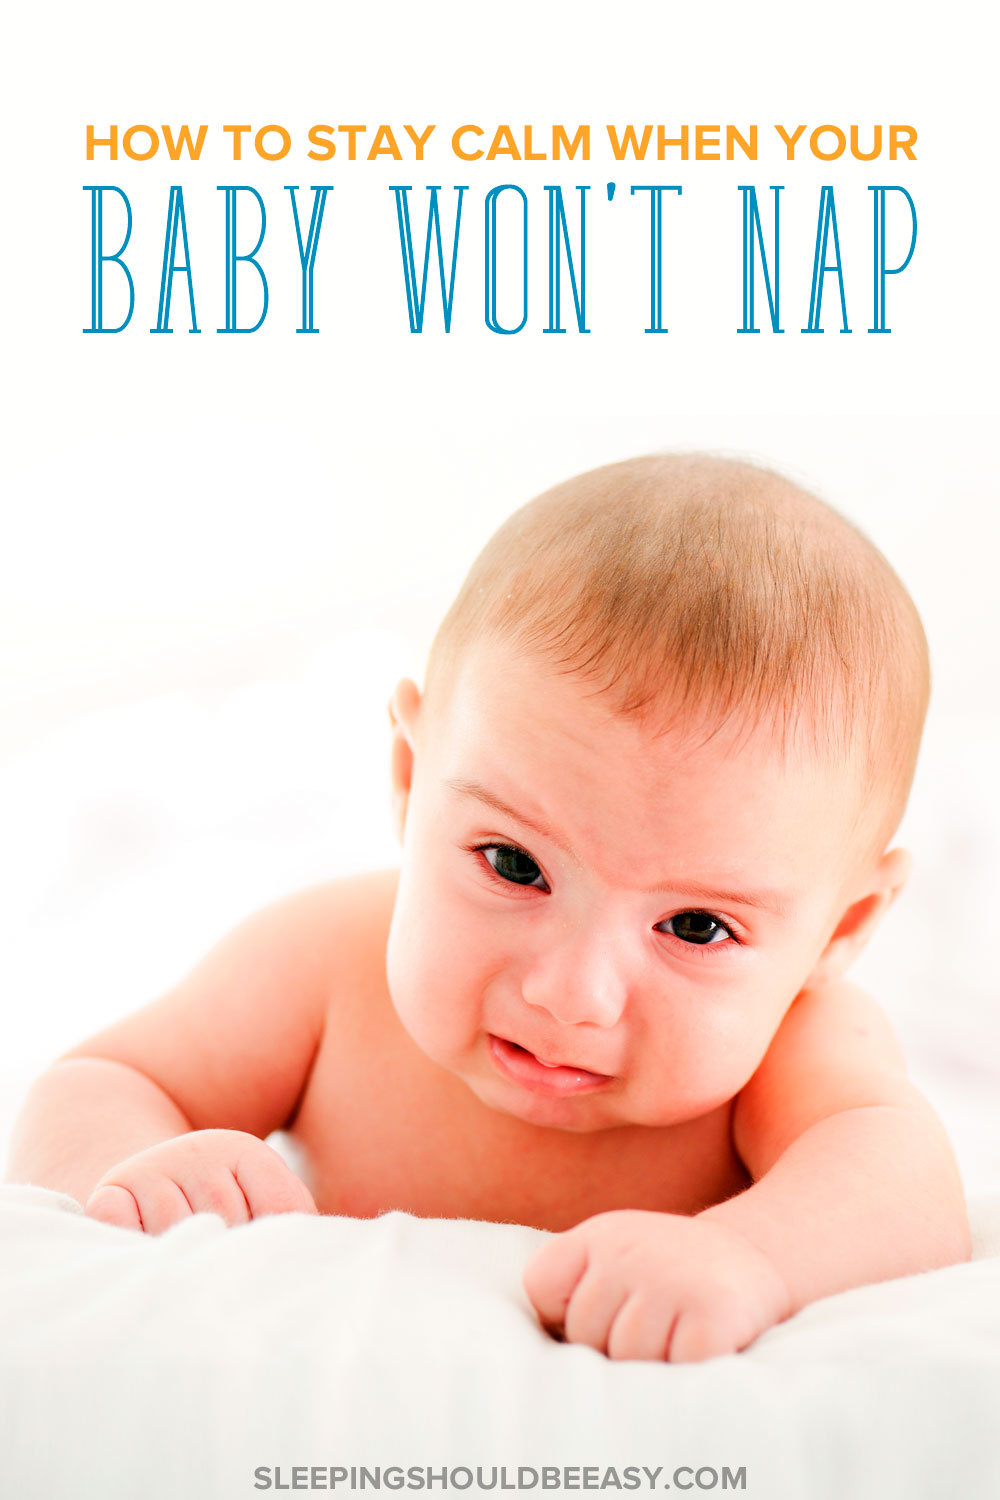 Frustrated When Your Baby Won't Nap? Here's How to Stay Calm.